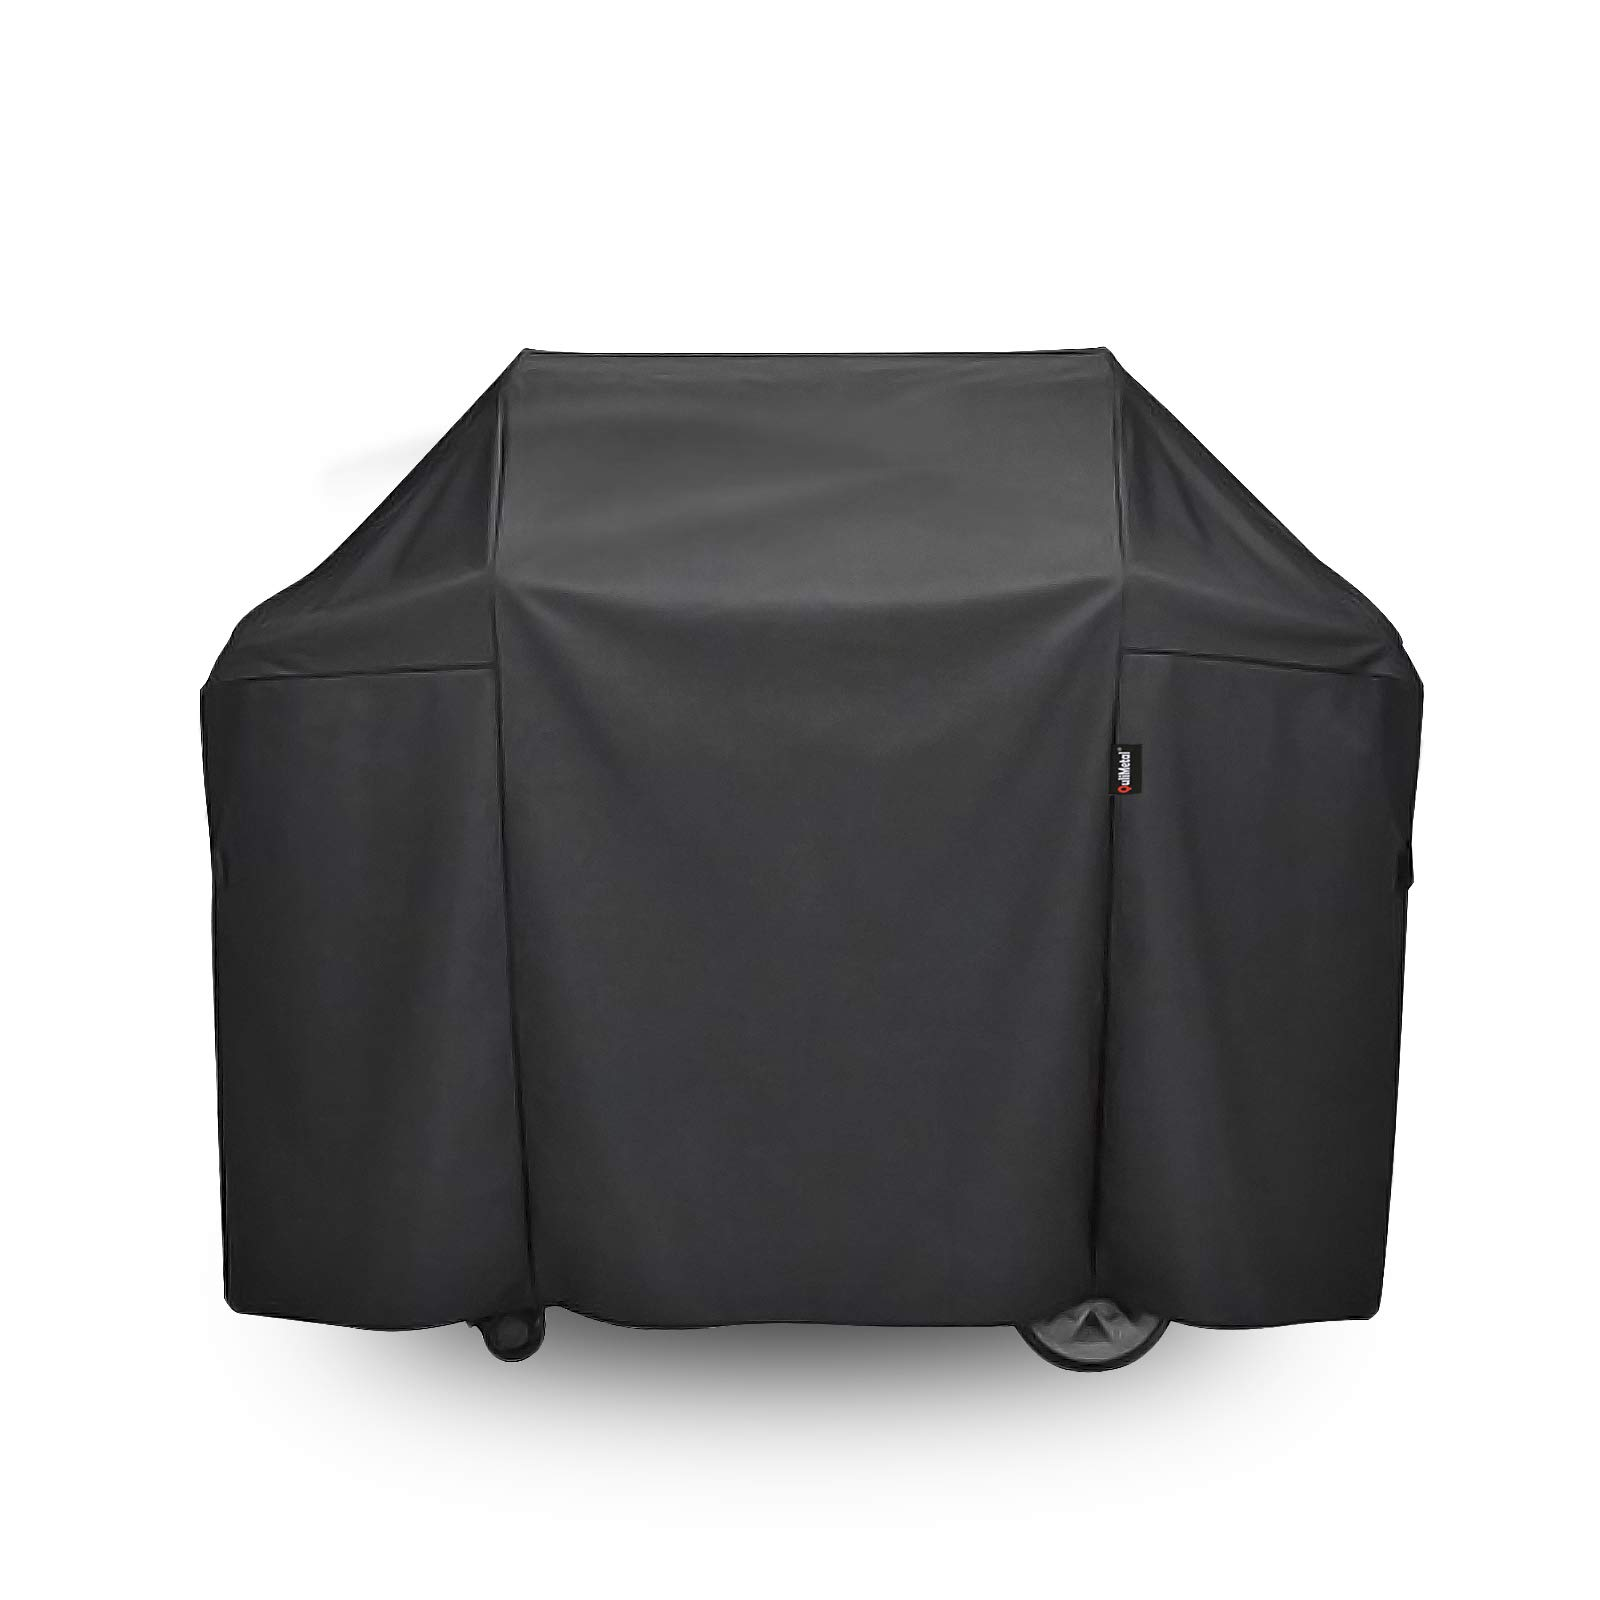 QuliMetal 7130 Grill Cover for Weber Genesis II 3 Burner Grill and Genesis 300 Series Grills (Compared to 7130), 58 Inches BBQ Grill Cover for Weber Genesis 310/ Genesis 330/ Genesis II 310